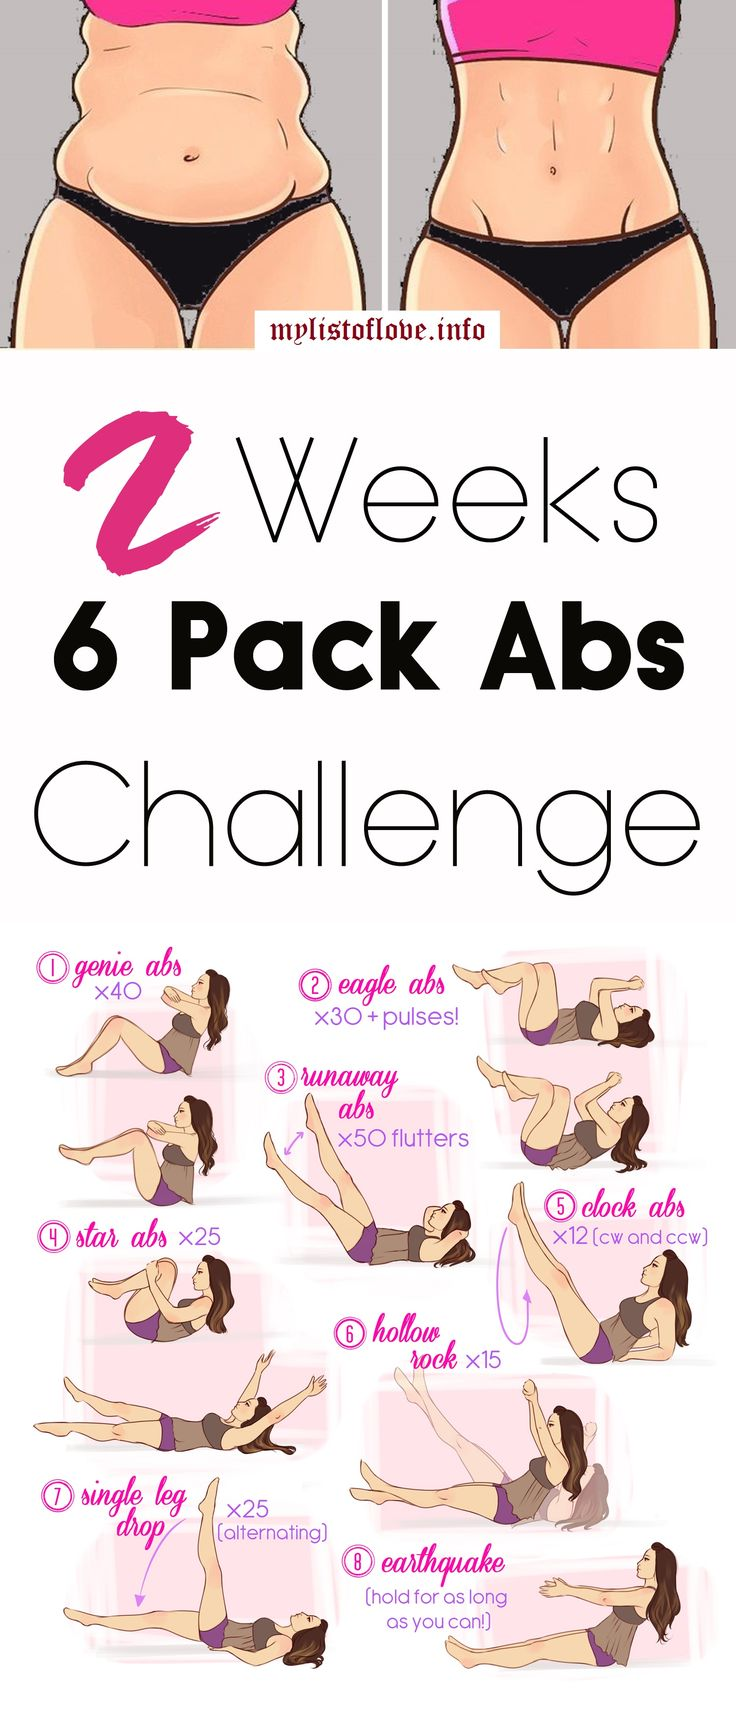 2 Weeks Hard Core 6 Pack Abs Workout Challenge....